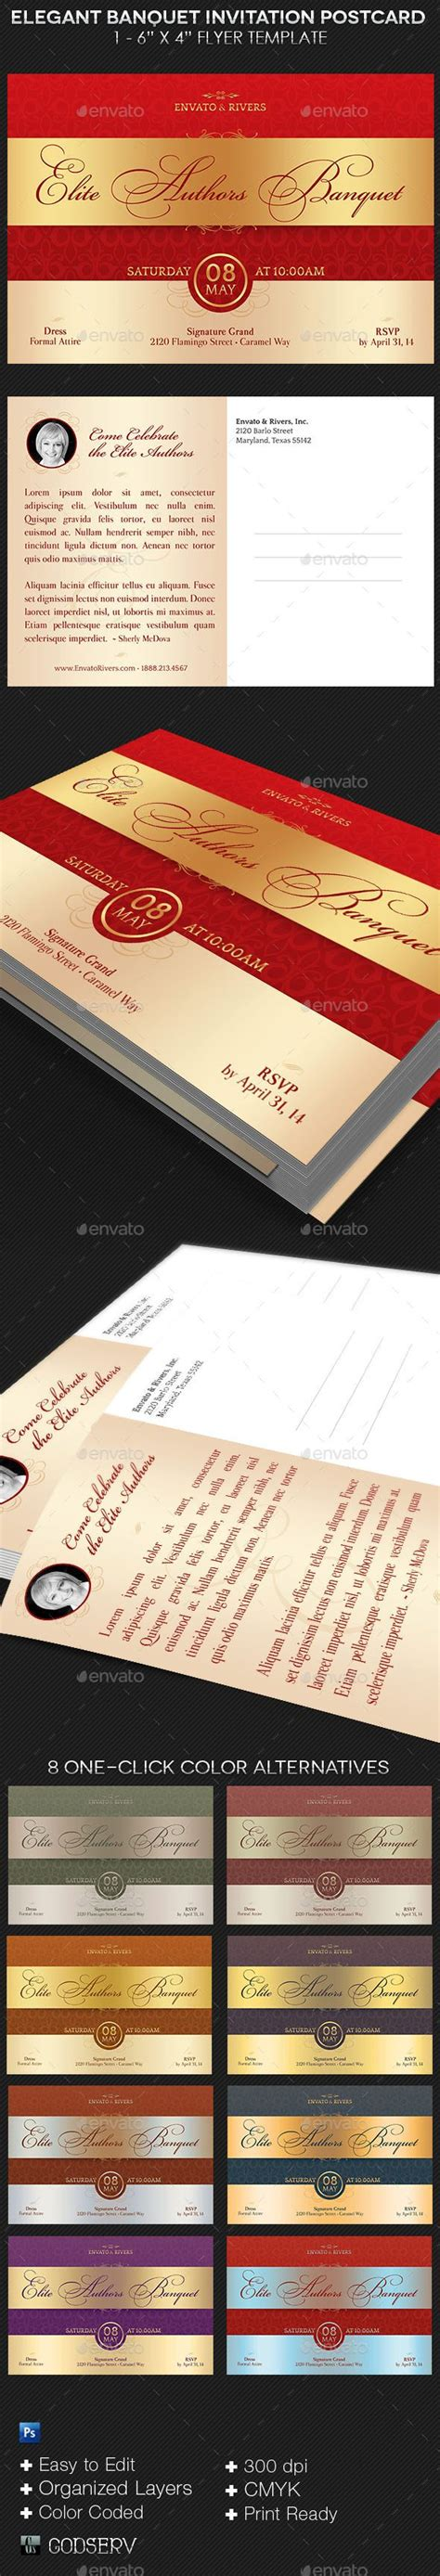 postcard template graphicriver pin by best graphic design on postcard templates